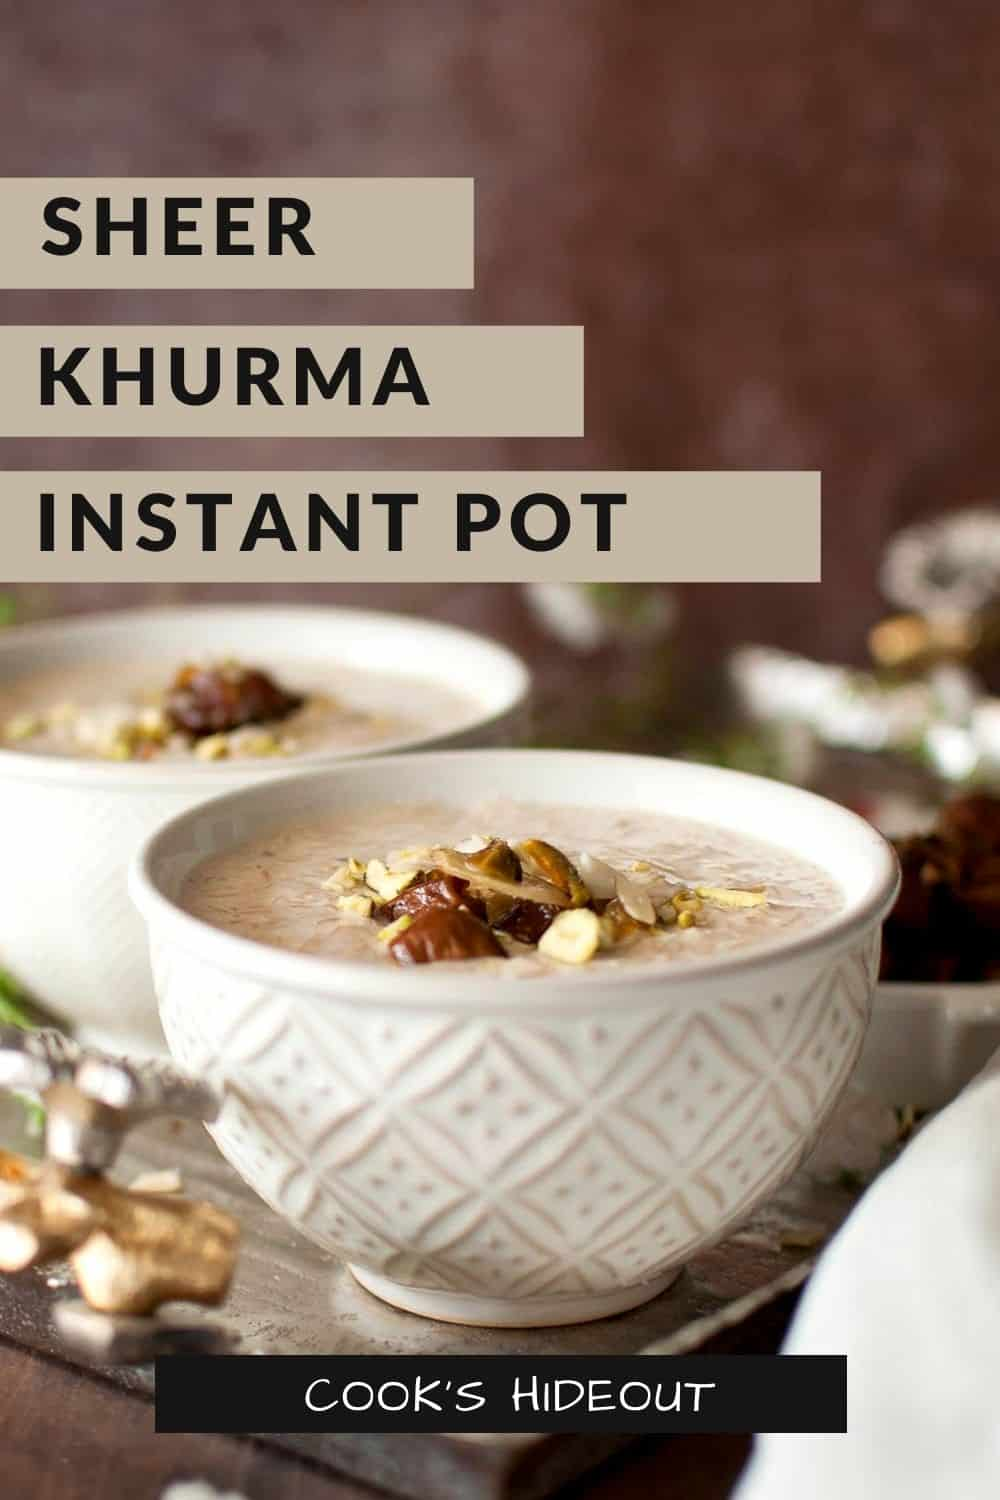 Instant Pot sheer khurma in a cream color bowl